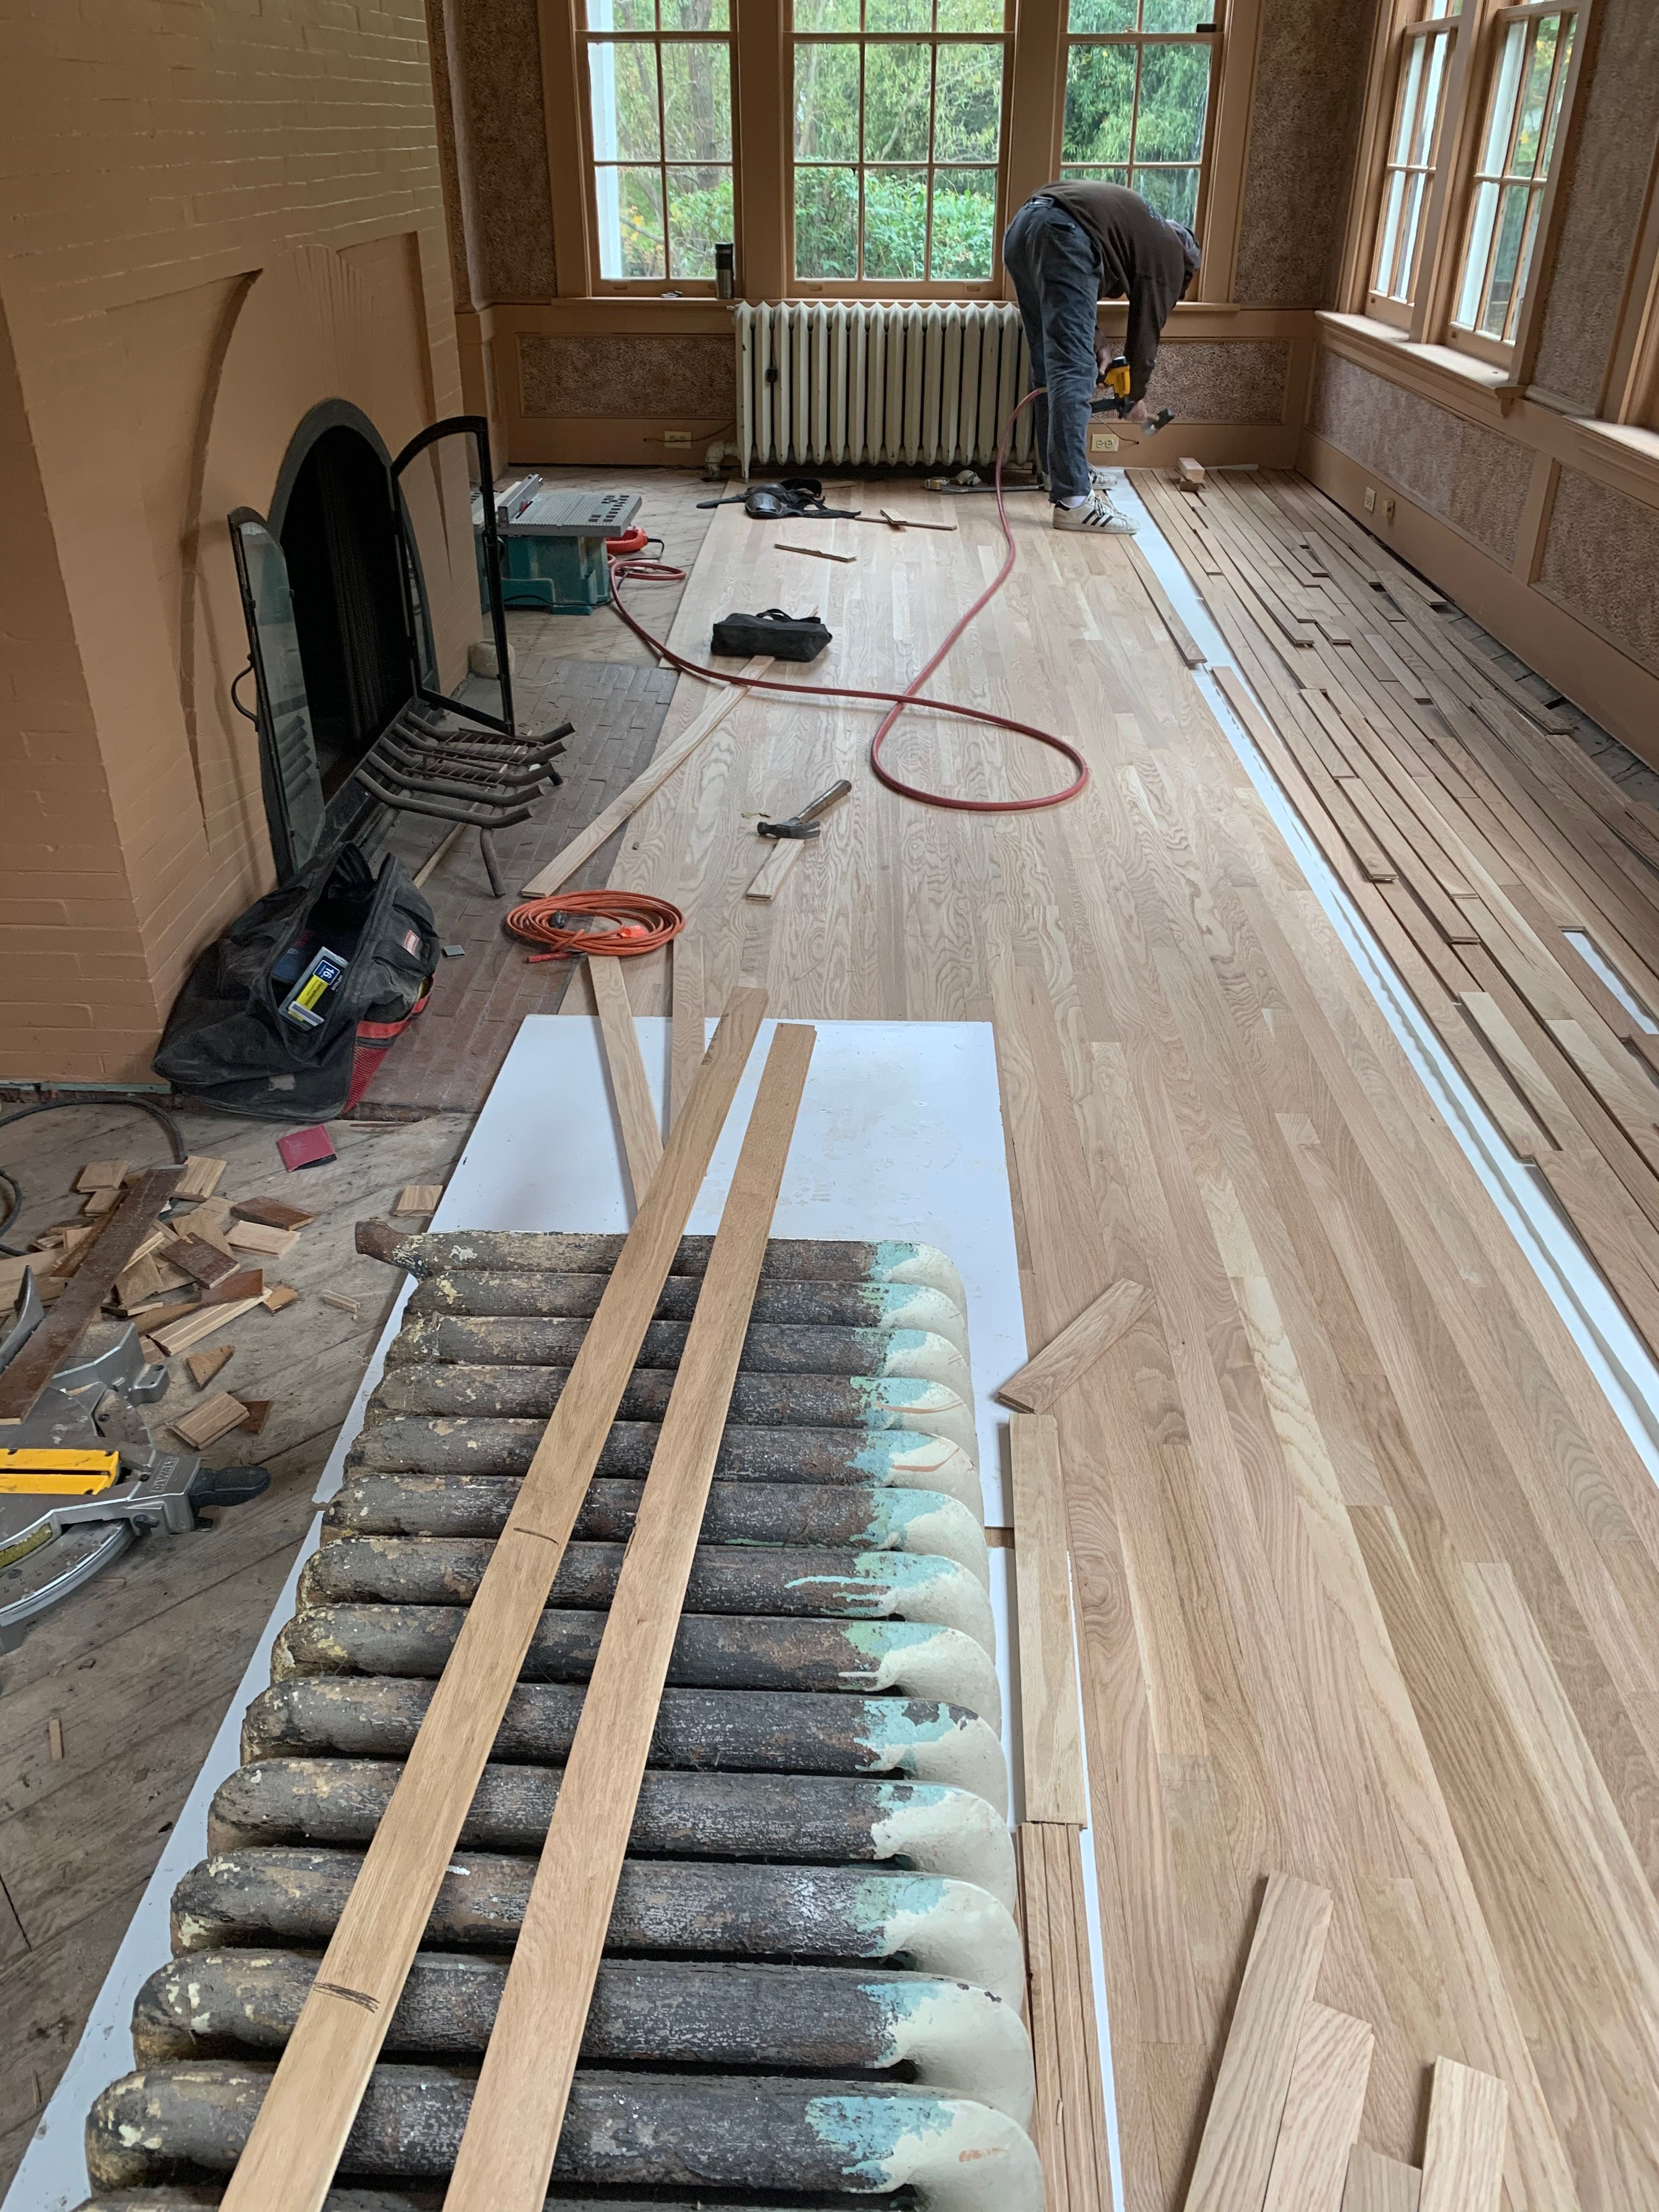 Installing New Hardwood Floors In Our 1st Floor Sitting Room Extreme Floors Doing A Great Job Floor Sitting Hardwood Floors Hardwood